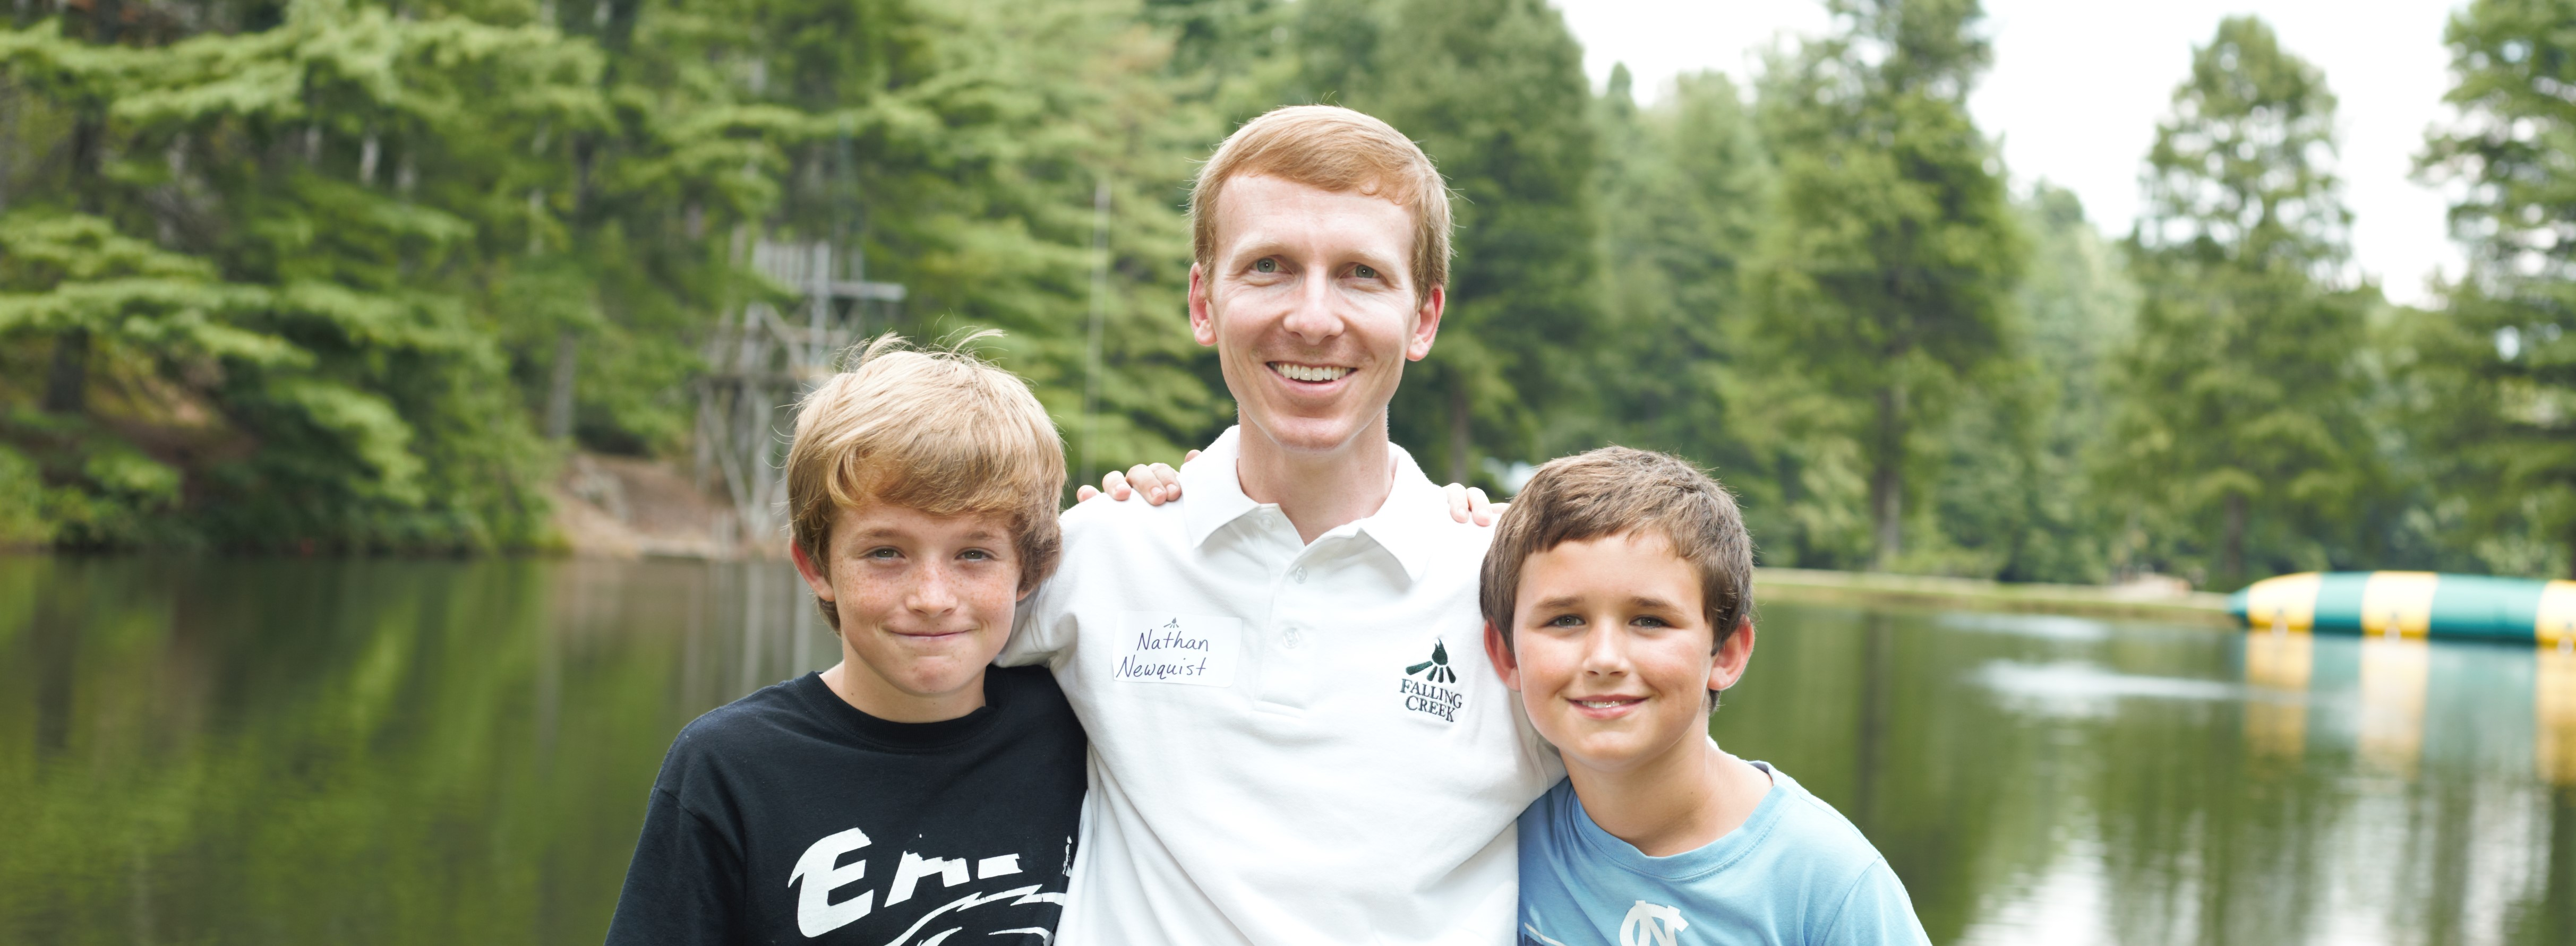 Nathan and his sons at camp in 2015.